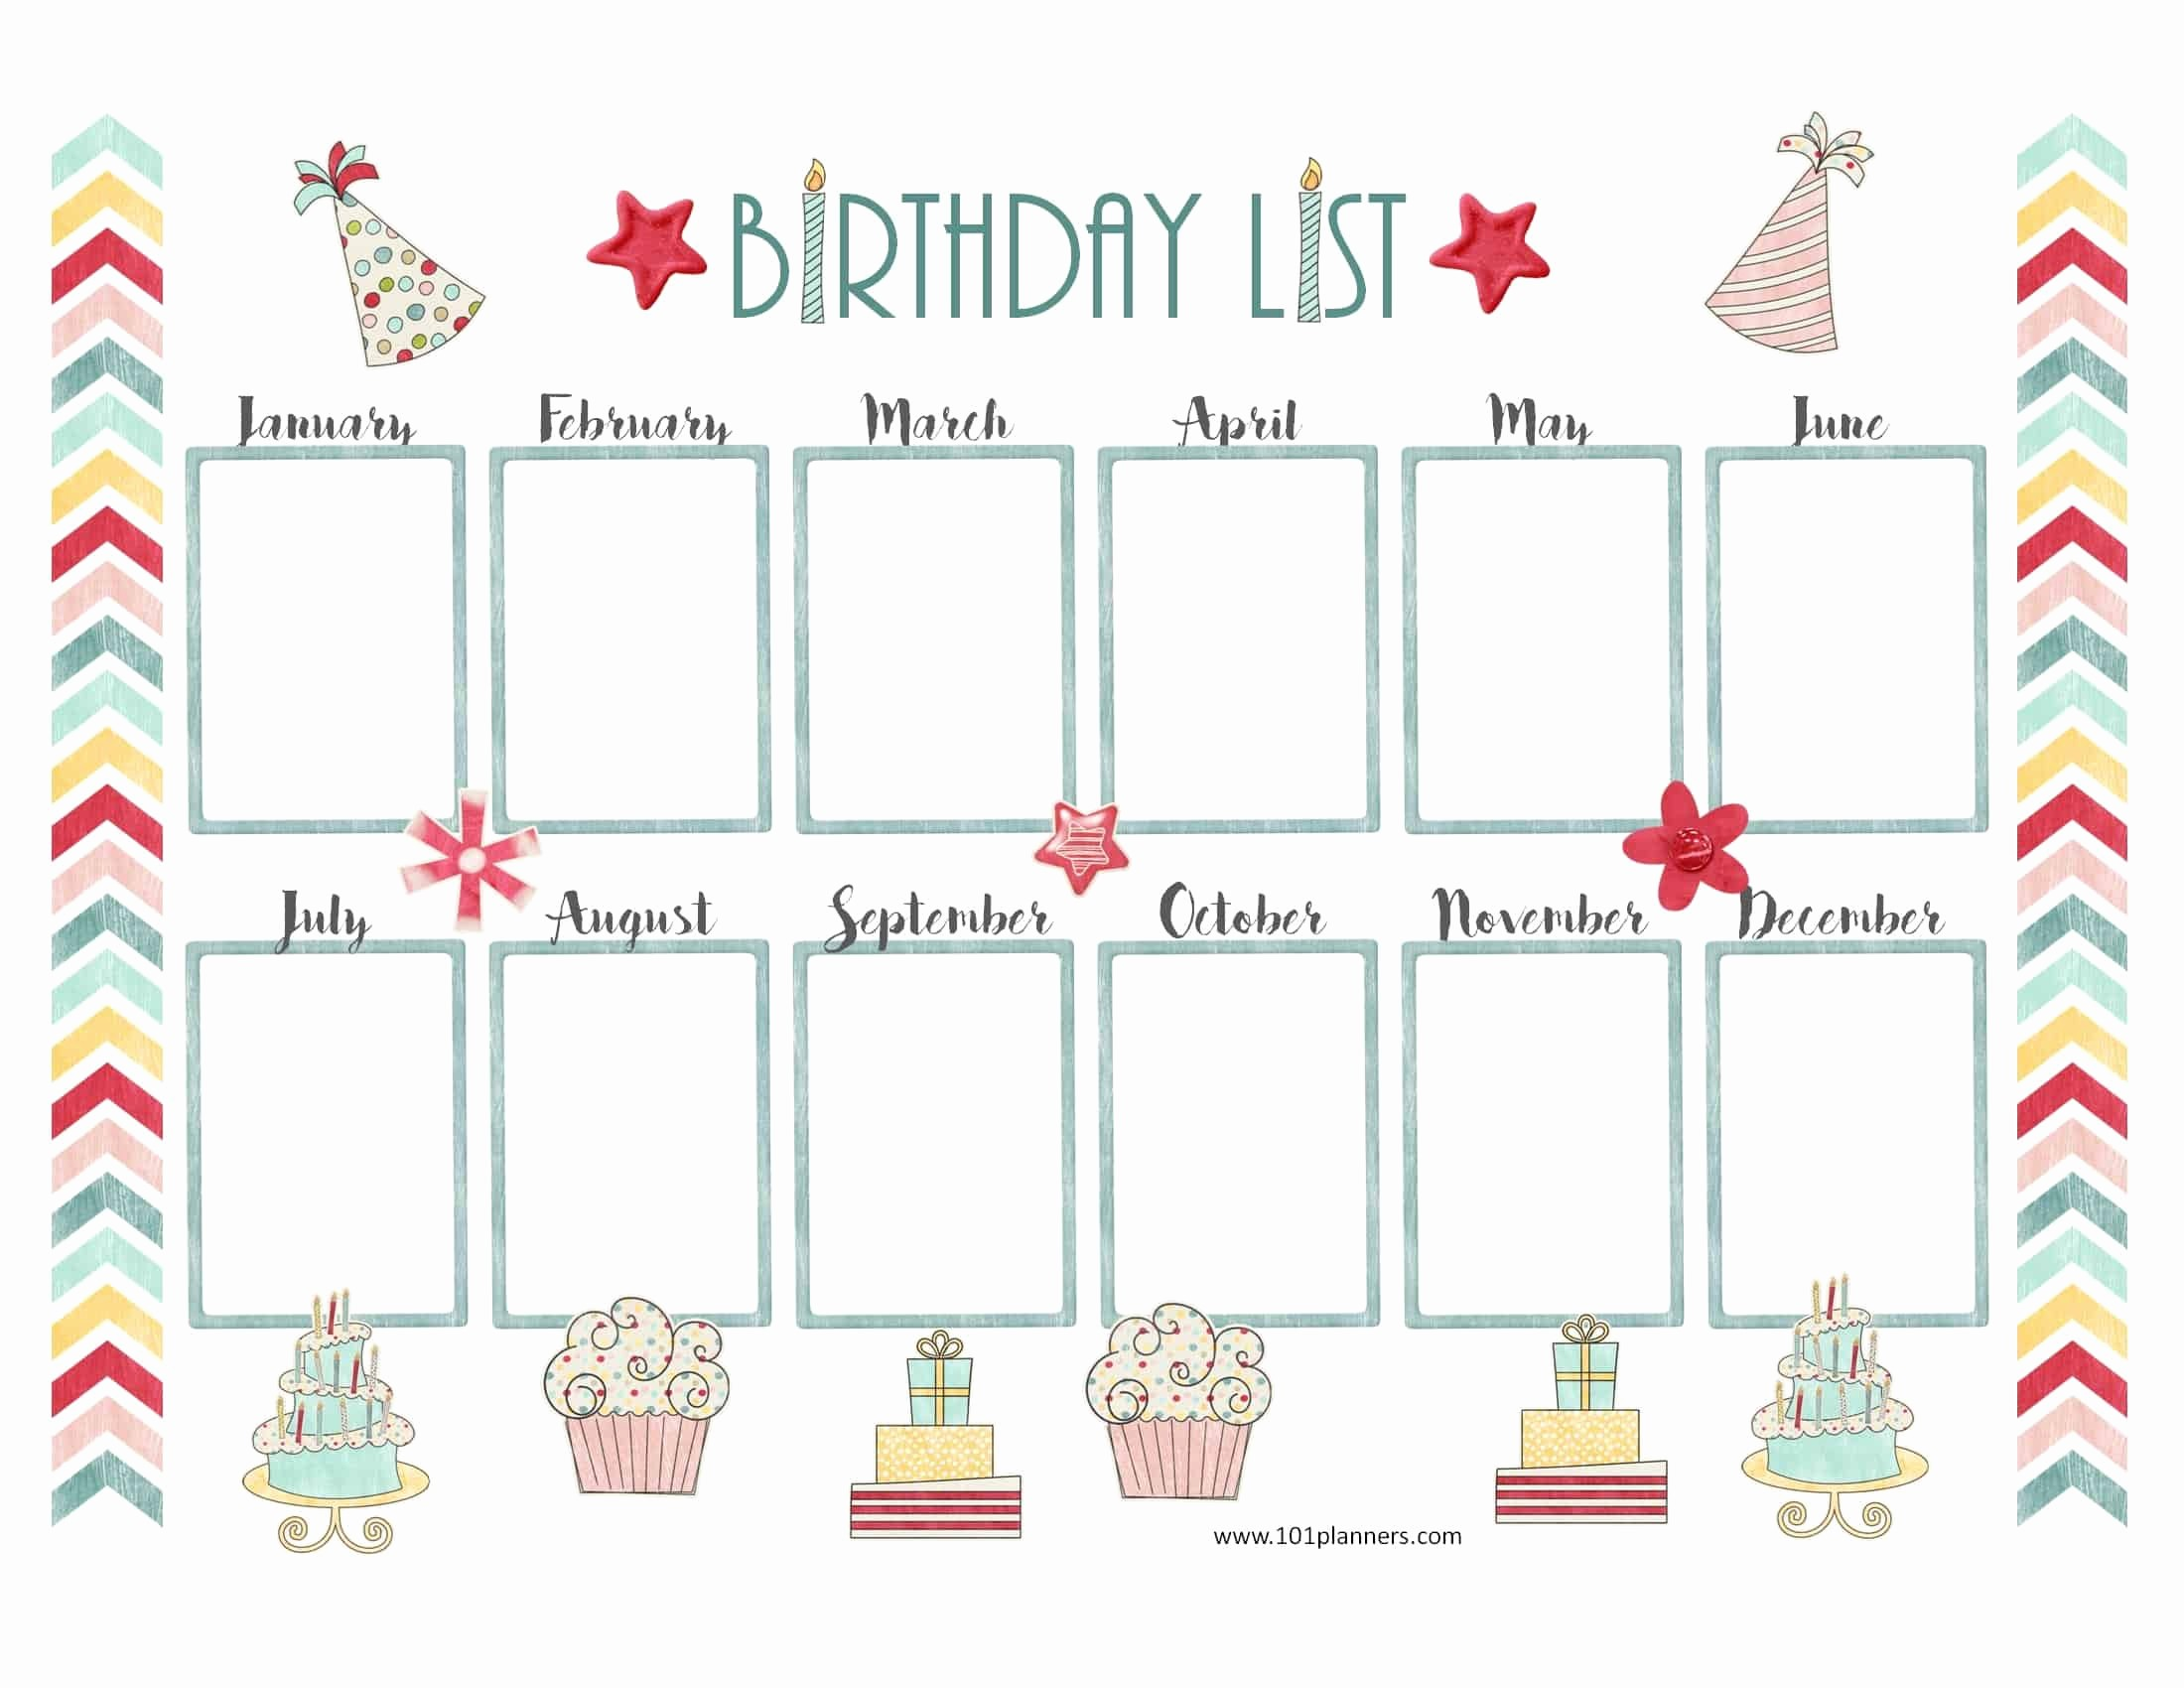 Birthday Wish List Template Printable Fresh Free Birthday Calendar